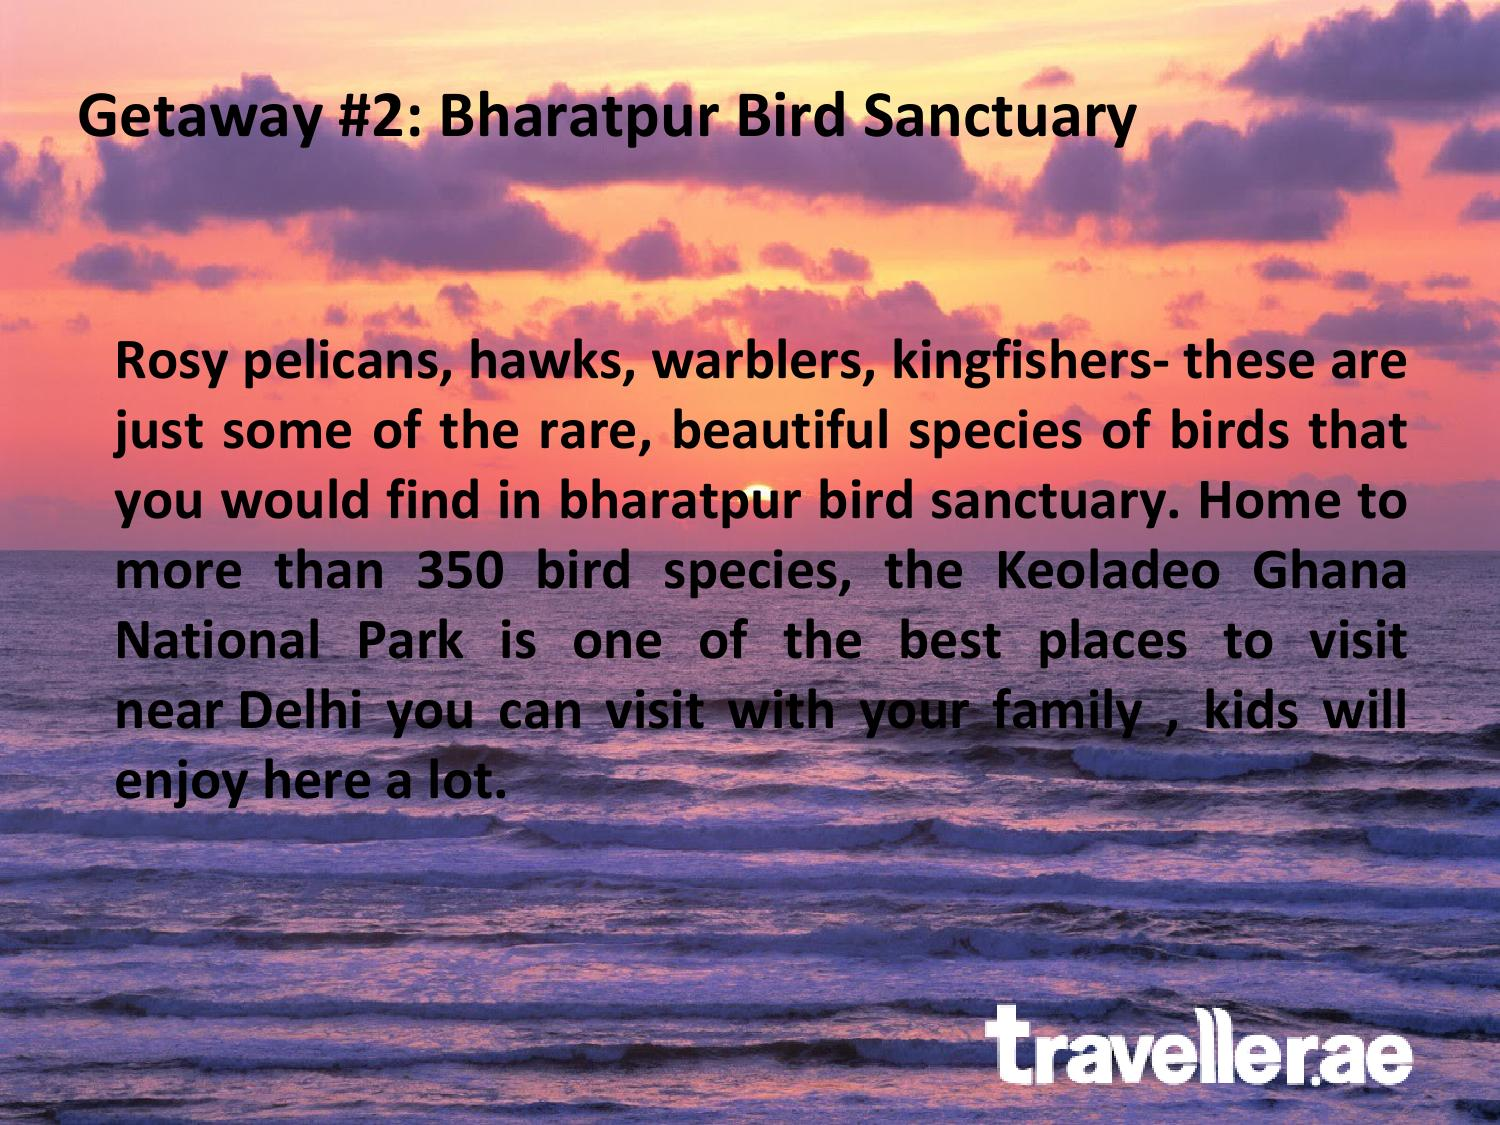 Weekend Getaways From Delhi Tour Travel Holiday Company Of Dubai By Travellerae Issuu